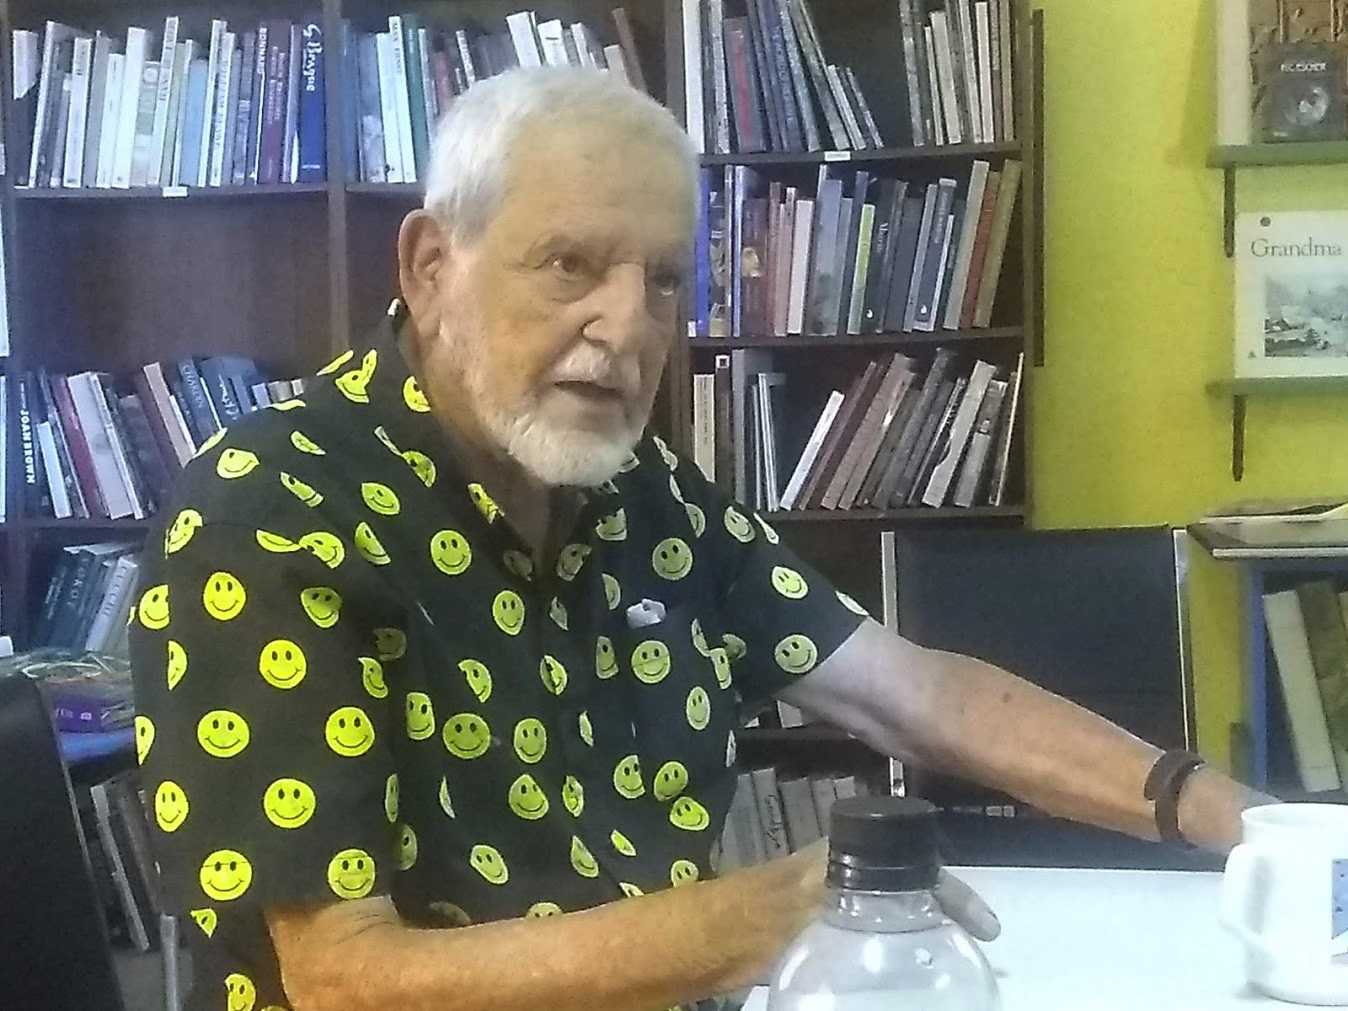 Dr. Ernest Garcia, black shirt with yellow smiley faces and silver hair